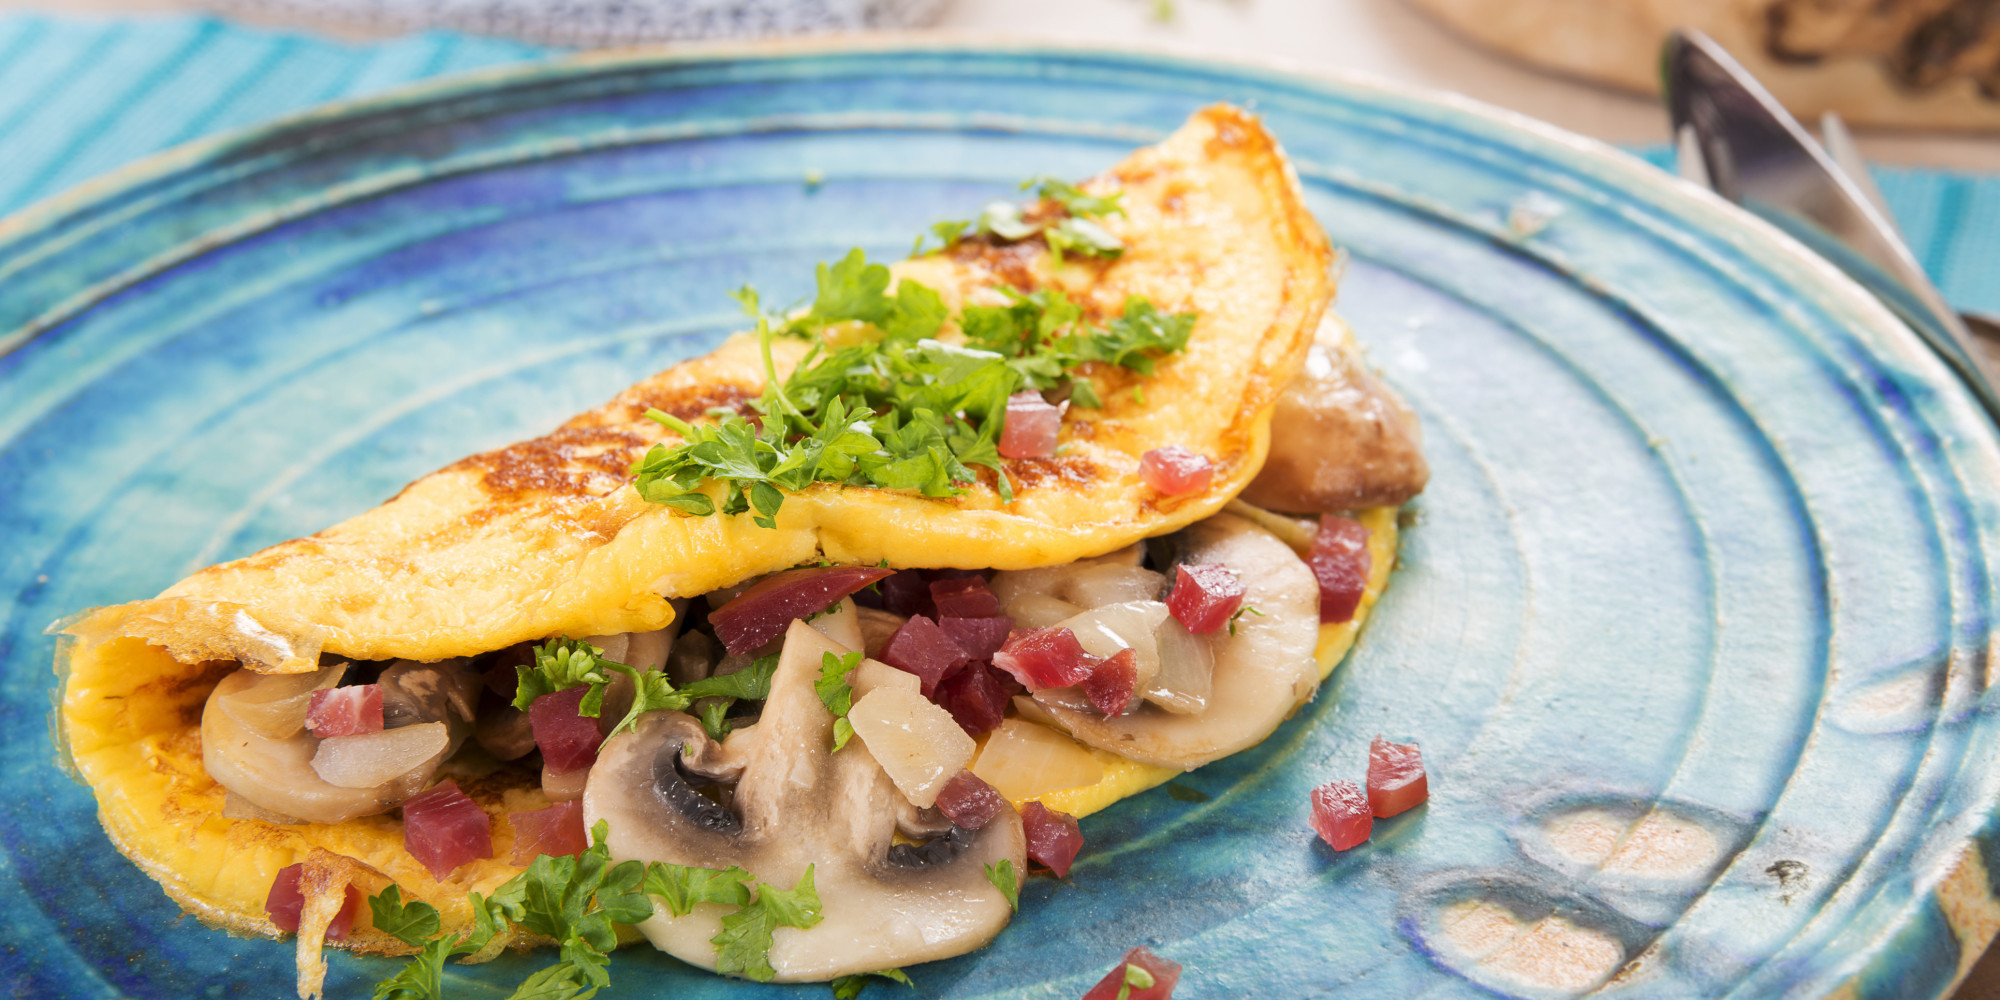 Breakfast Ideas Healthy  13 Healthy Breakfast Ideas Packed With Protein And Low In